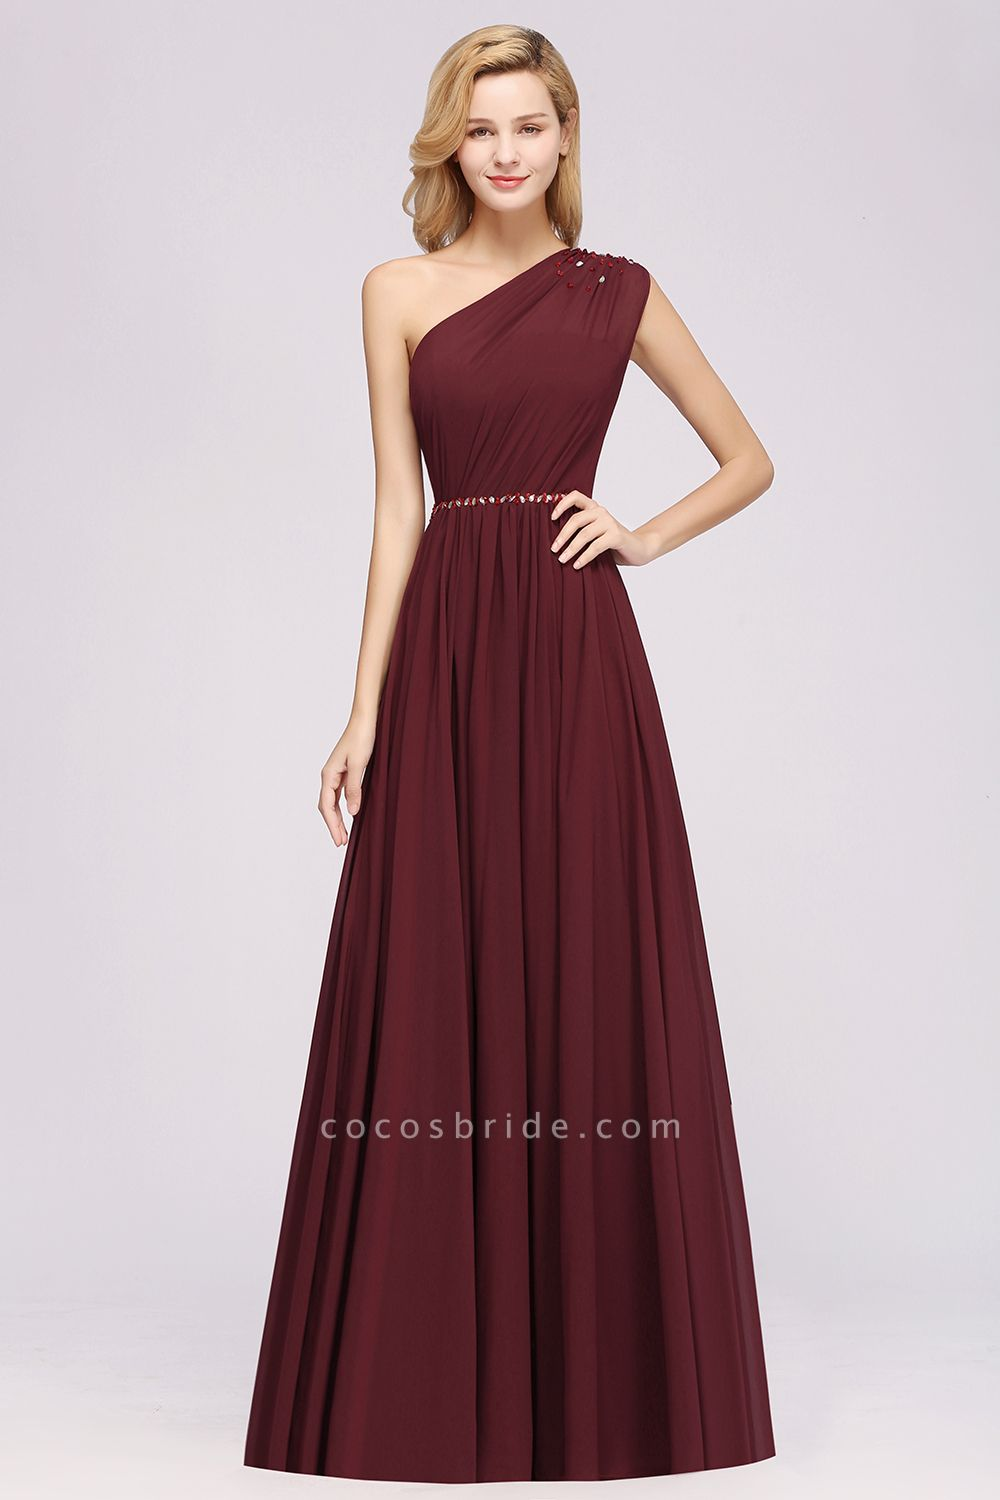 Elegant A-Line Burgundy Chiffon One-Shoulder Sleeveless Ruffles Floor-Length Bridesmaid Dresses with Beadings